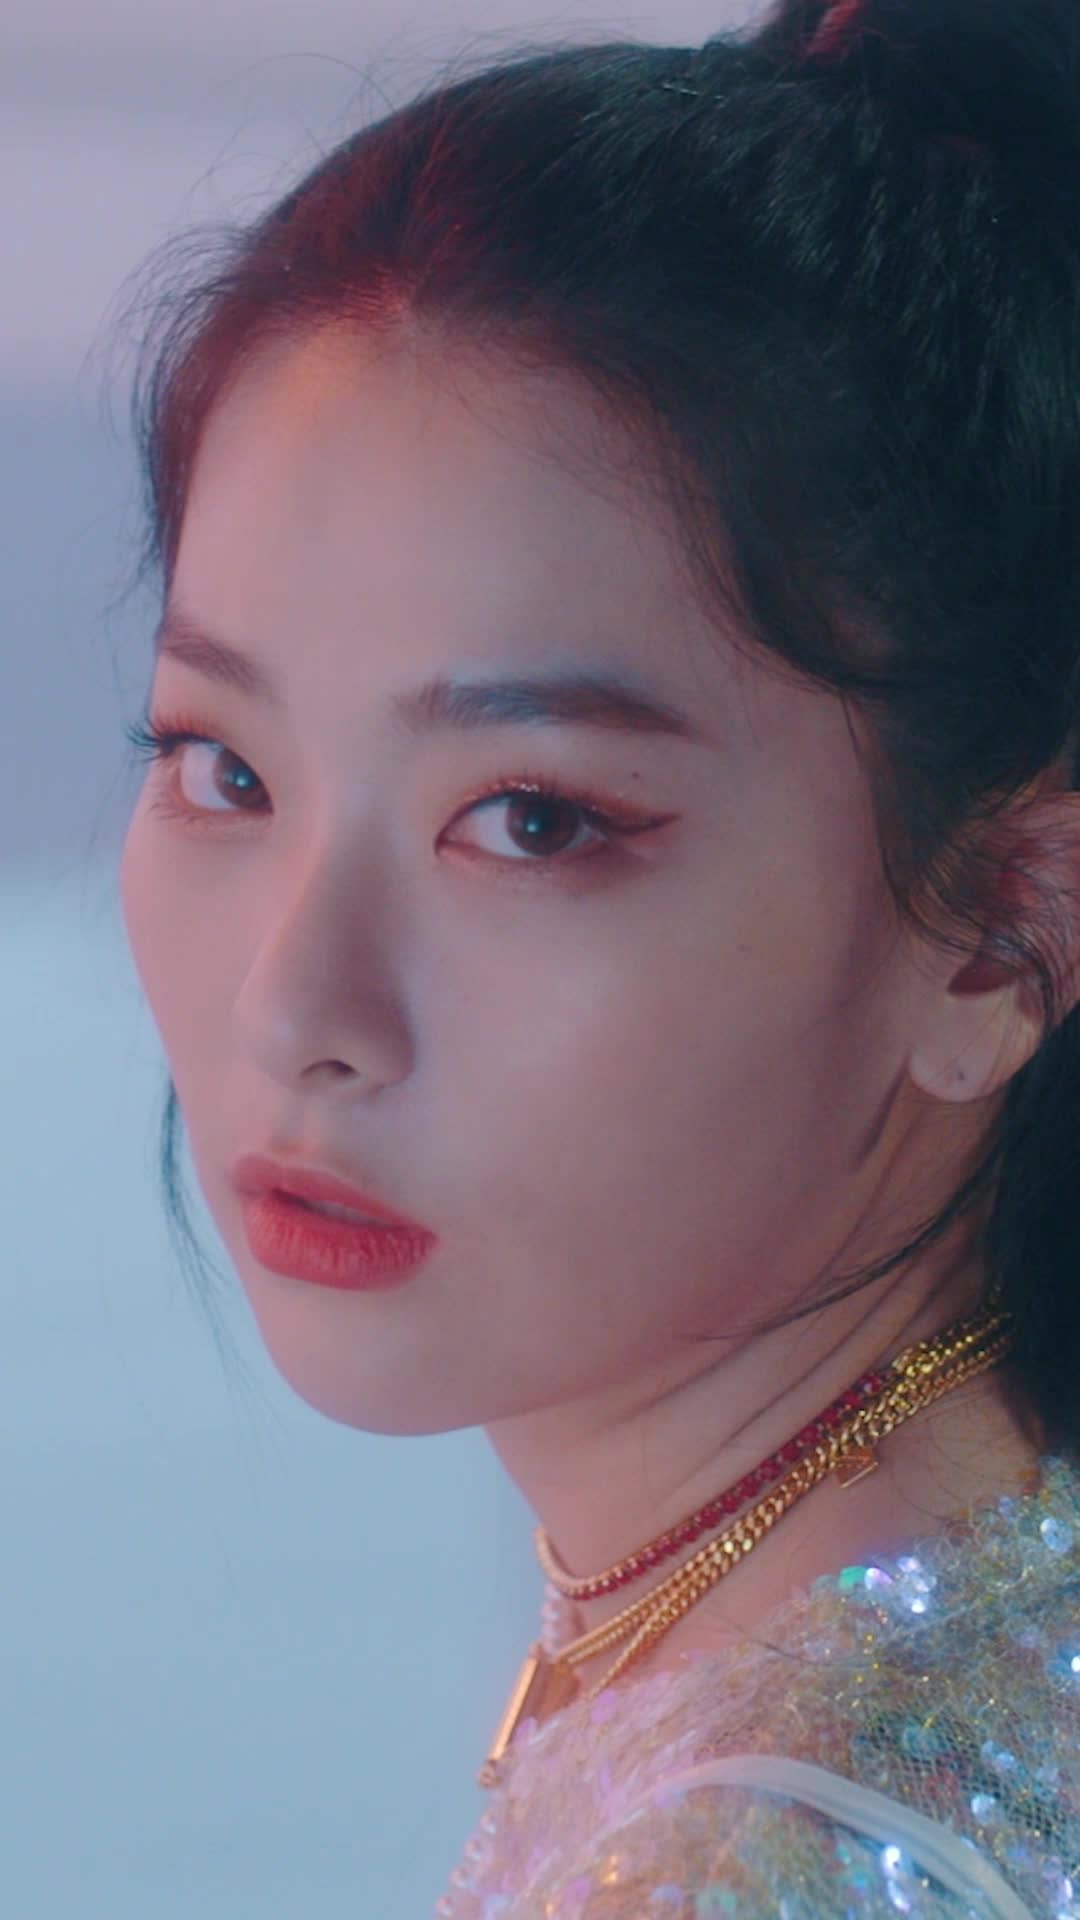 [VPACK] 'Wow Thing' - SEULGI